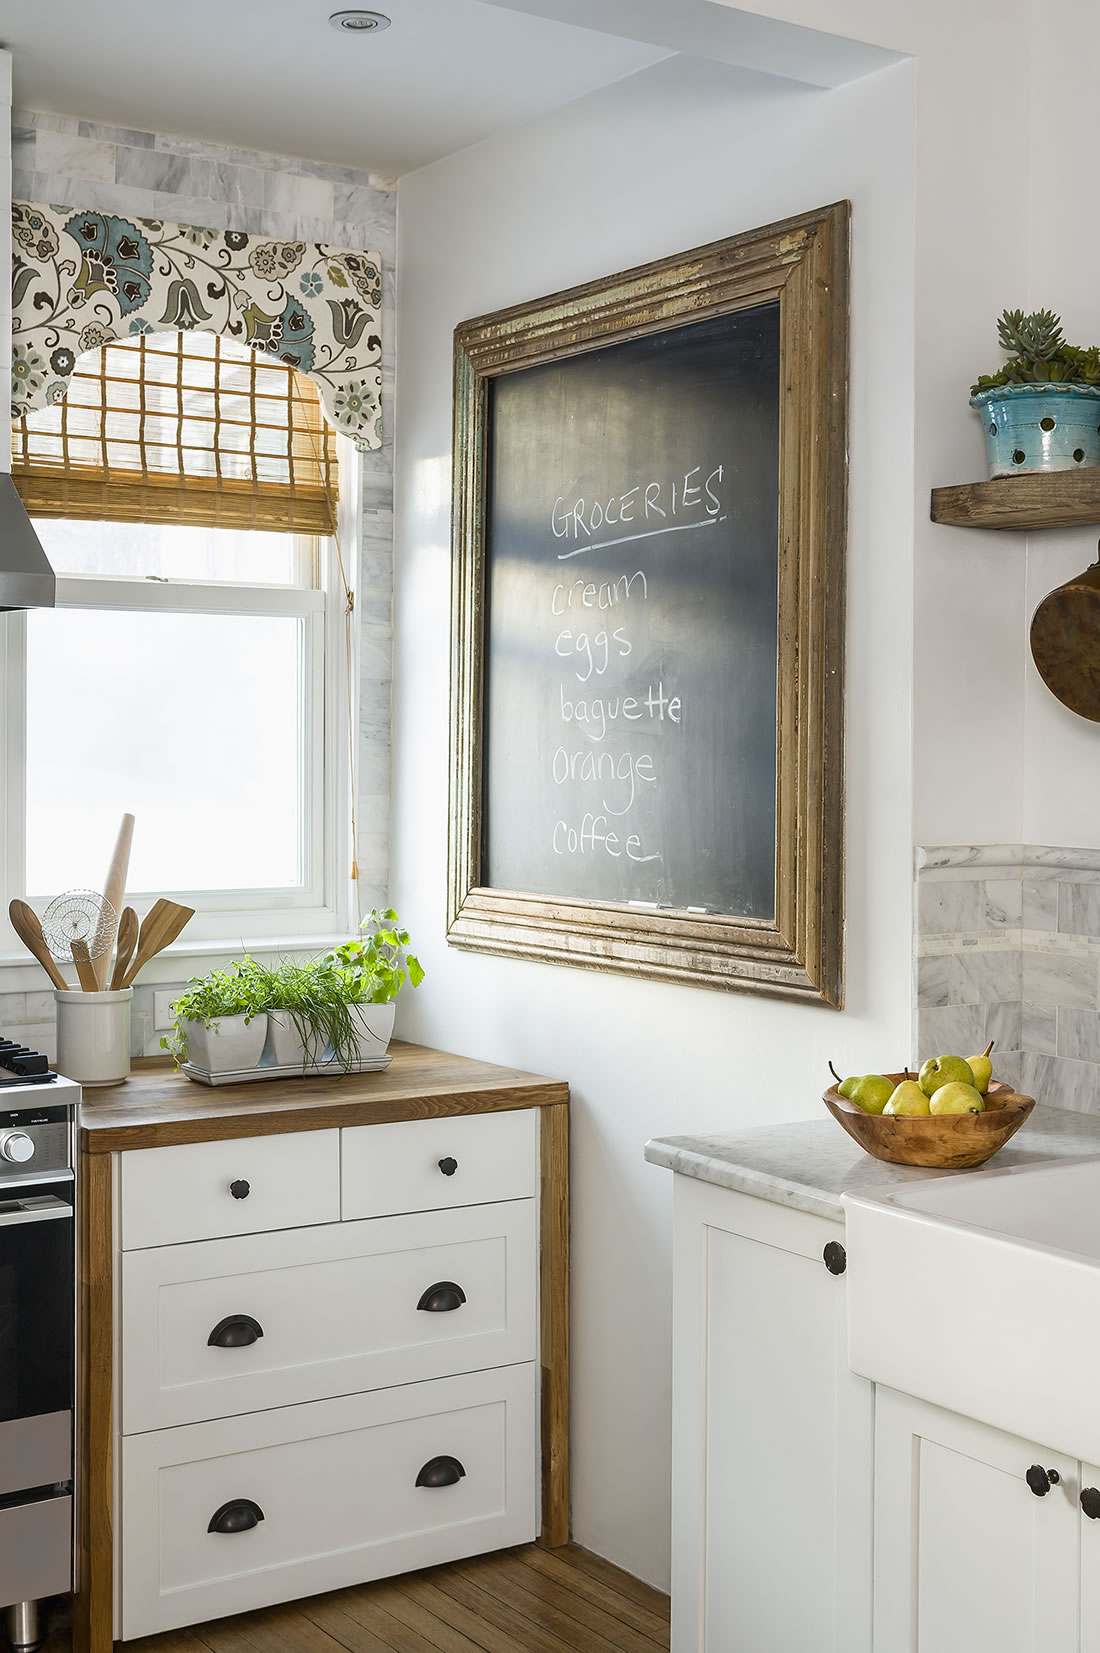 Andrea Rugg Photography | Corner of kitchen showing large chalkboard ...